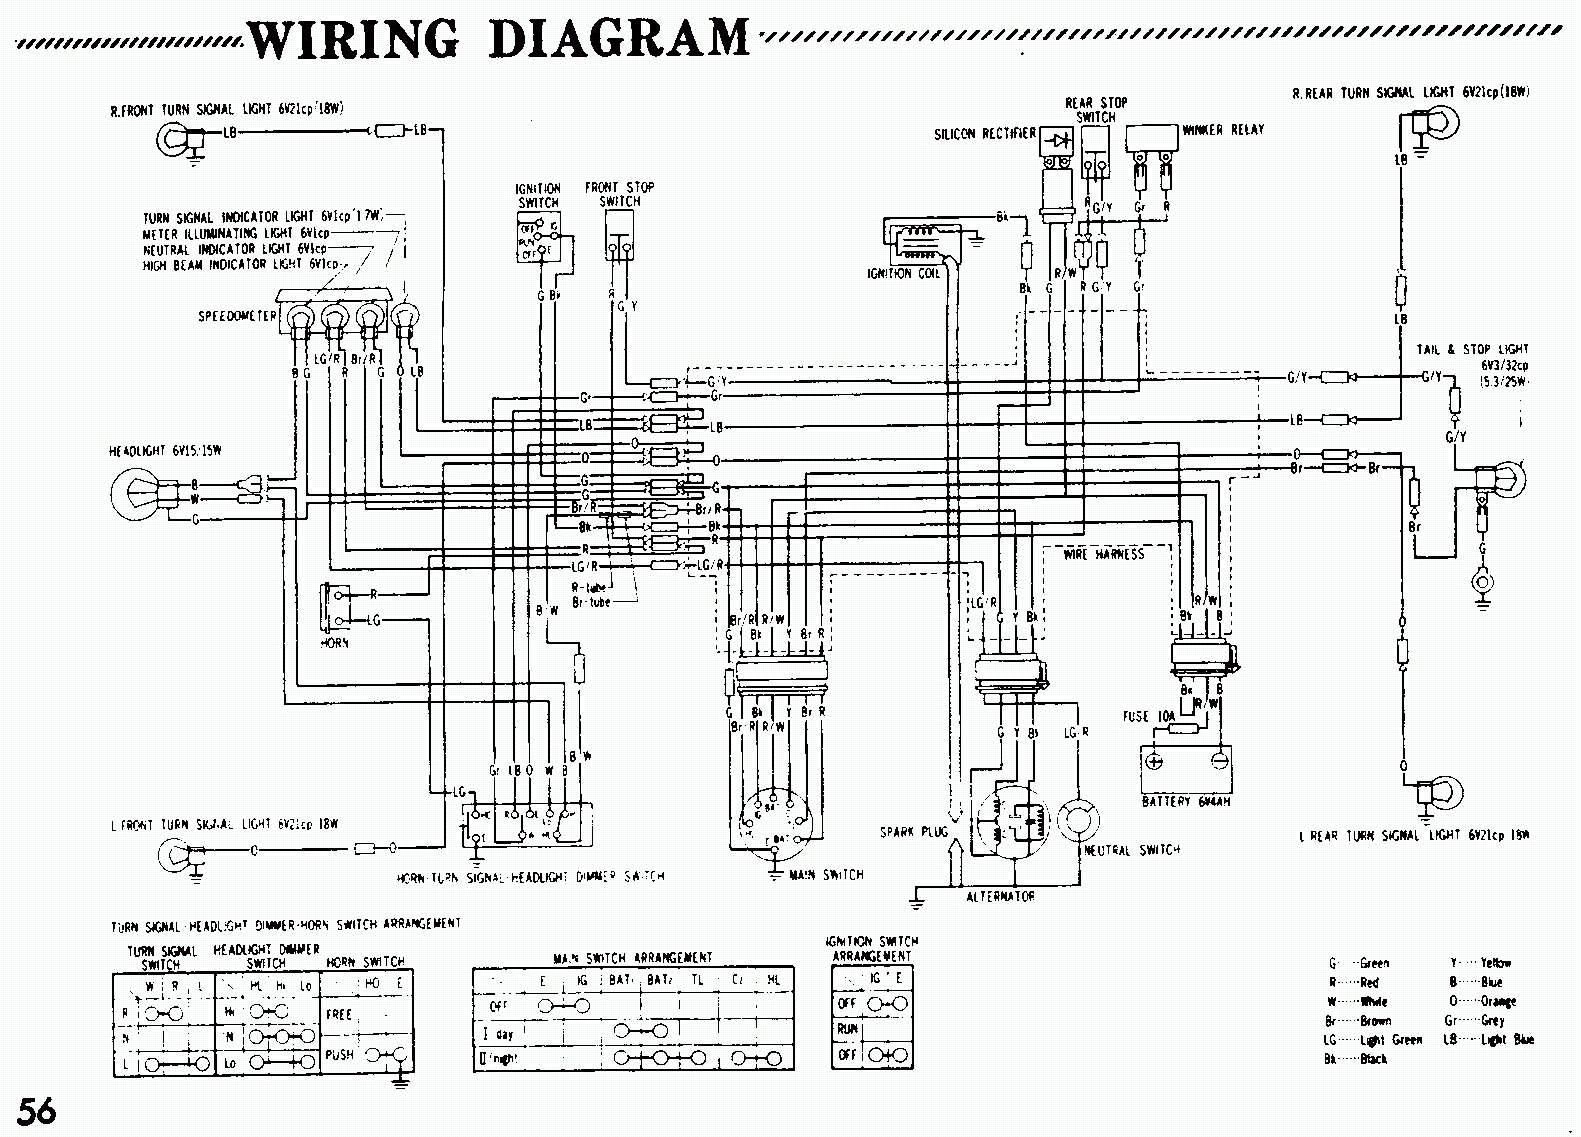 hight resolution of tbolt usa tech database tbolt usa llc honda ct 70 wire diagram honda trail 70 wiring diagram